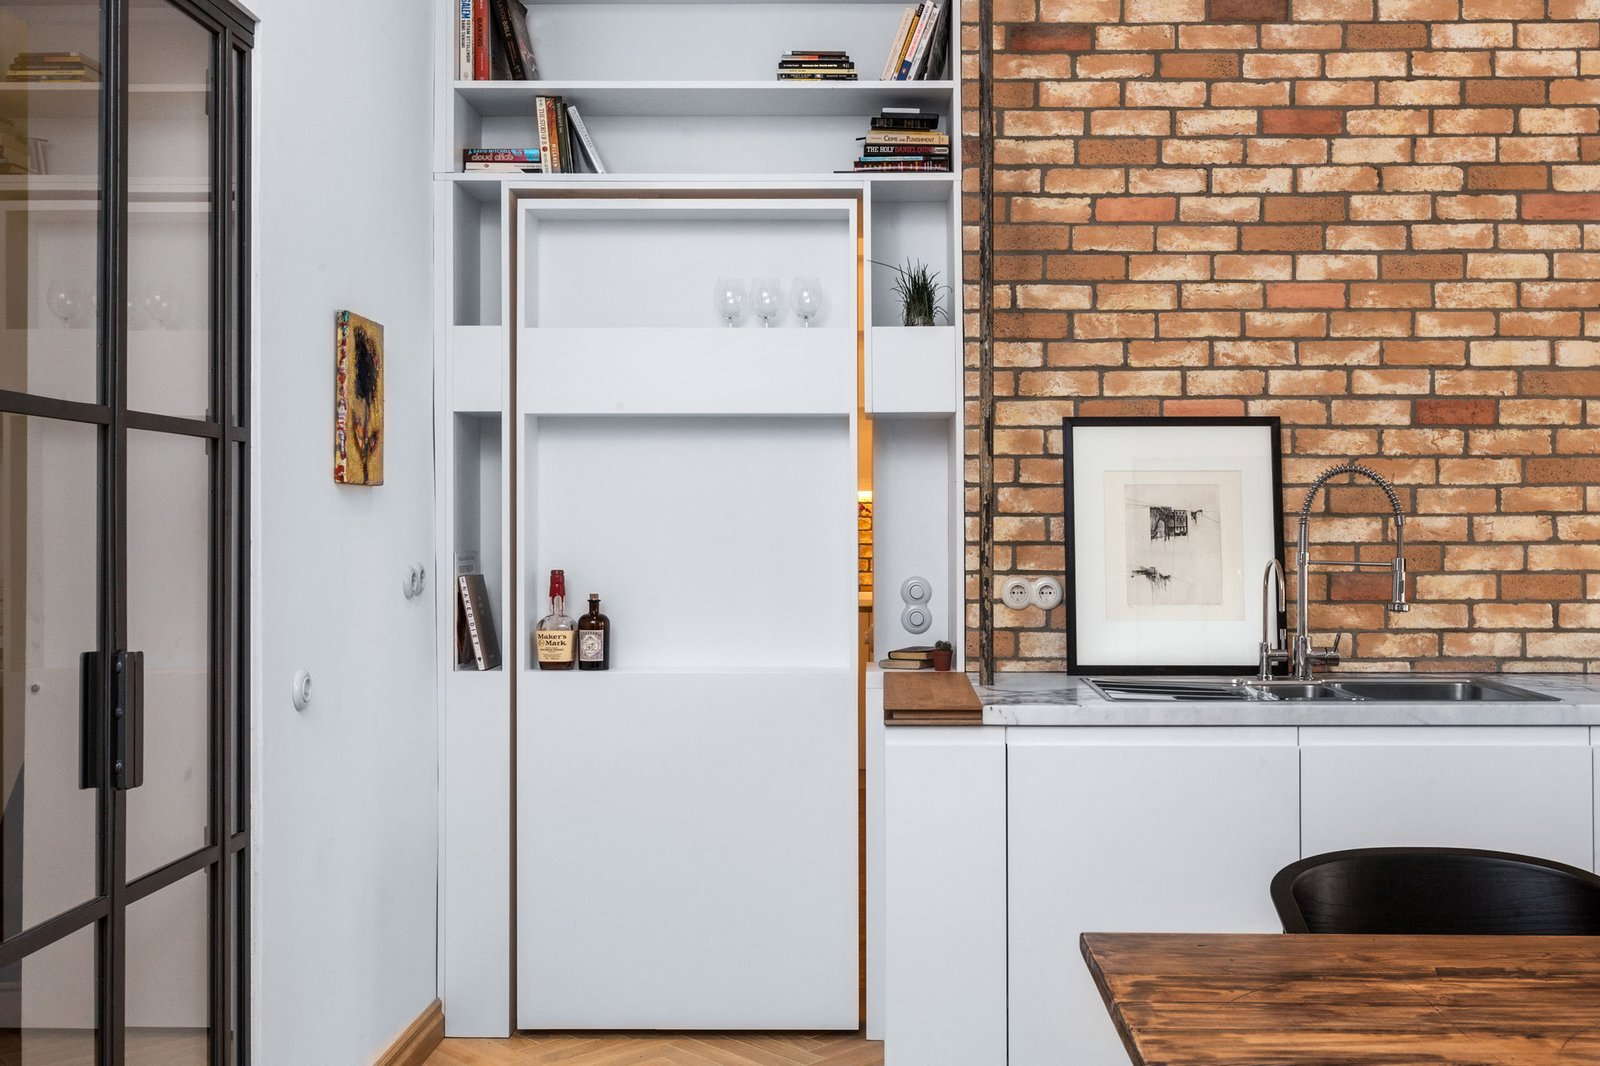 Photo 1 of 7 in A Hidden Passageway Makes Each Room in This Berlin Flat a Private Destination